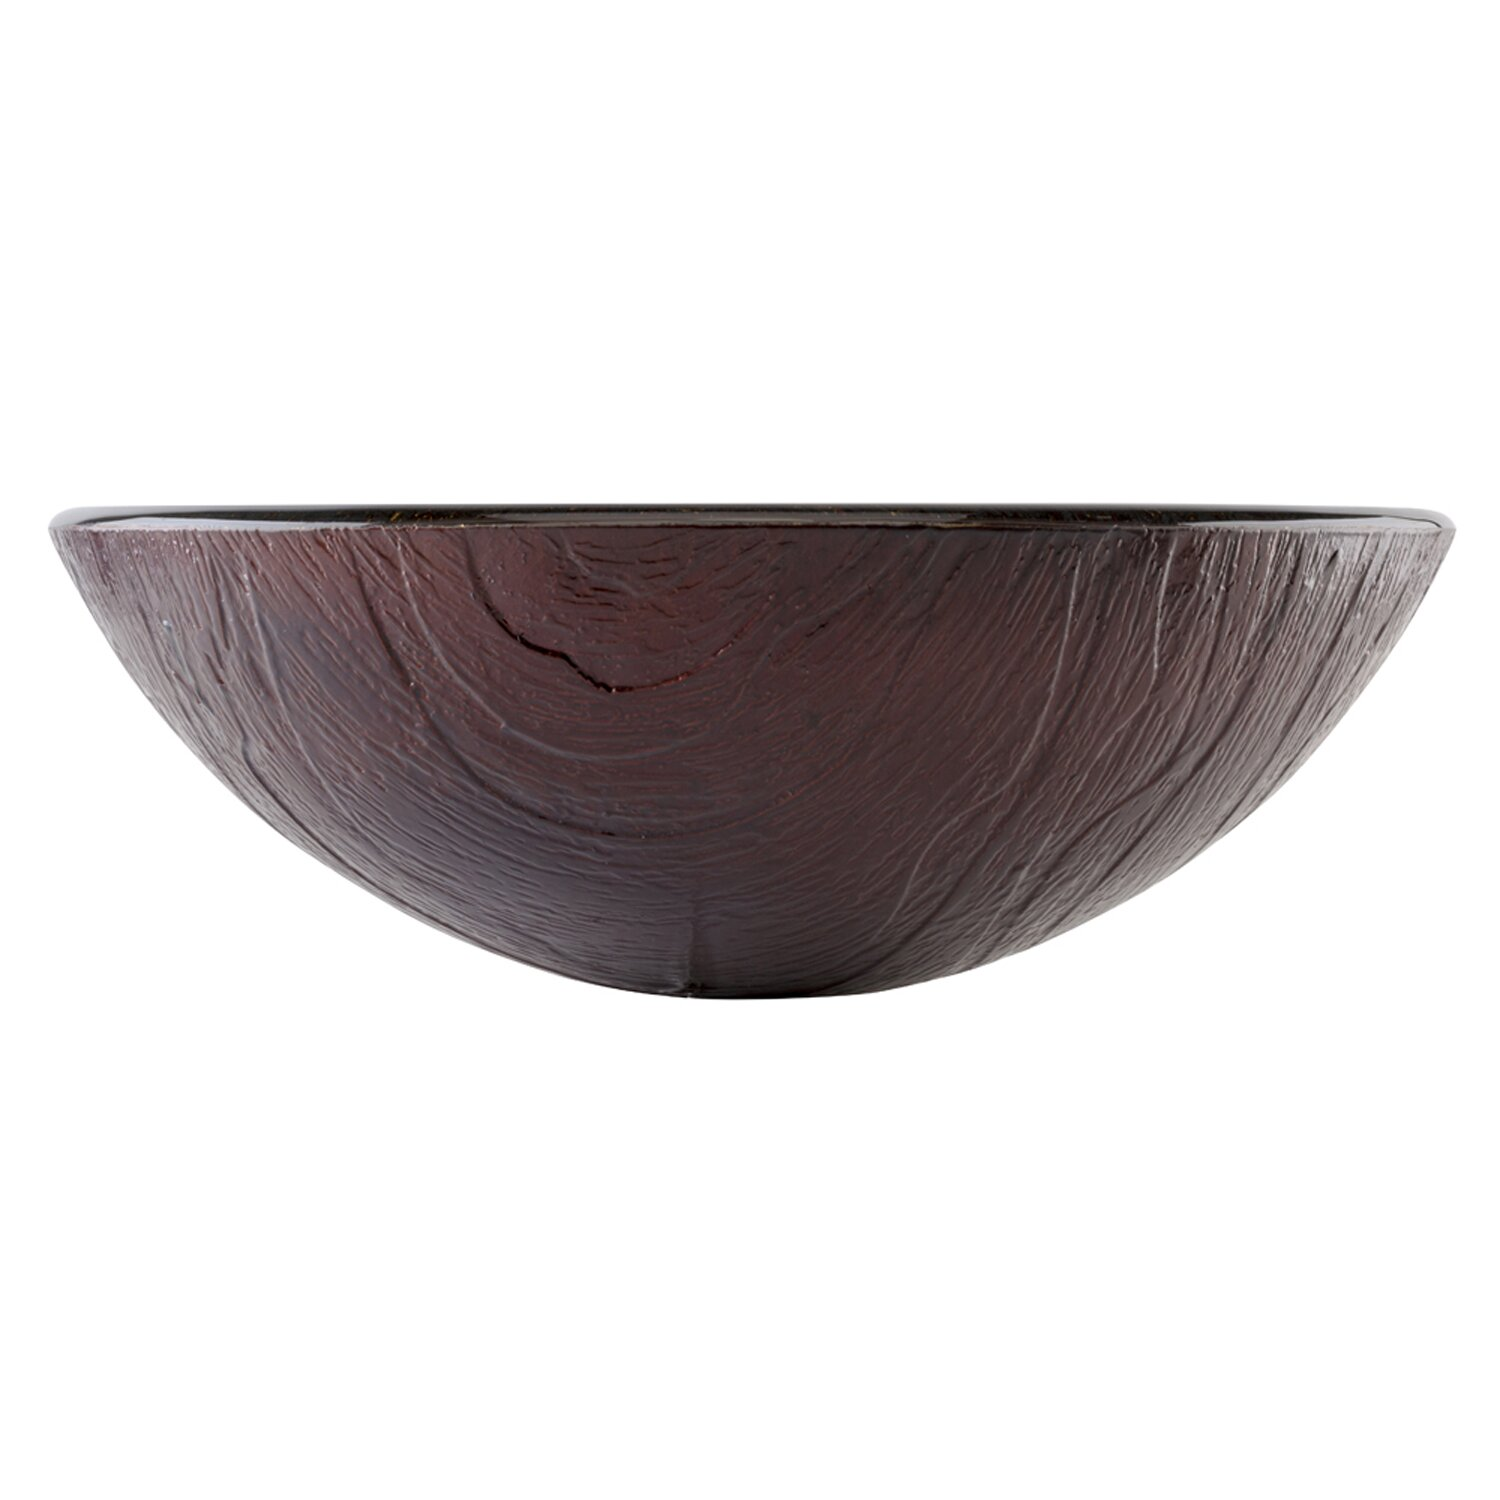 Vigo Kenyan Twilight Glass Vessel Bathroom Sink amp Reviews  : Vigo Kenyan Twilight Glass Vessel Bathroom Sink VG07029 from www.wayfair.com size 1500 x 1500 jpeg 170kB